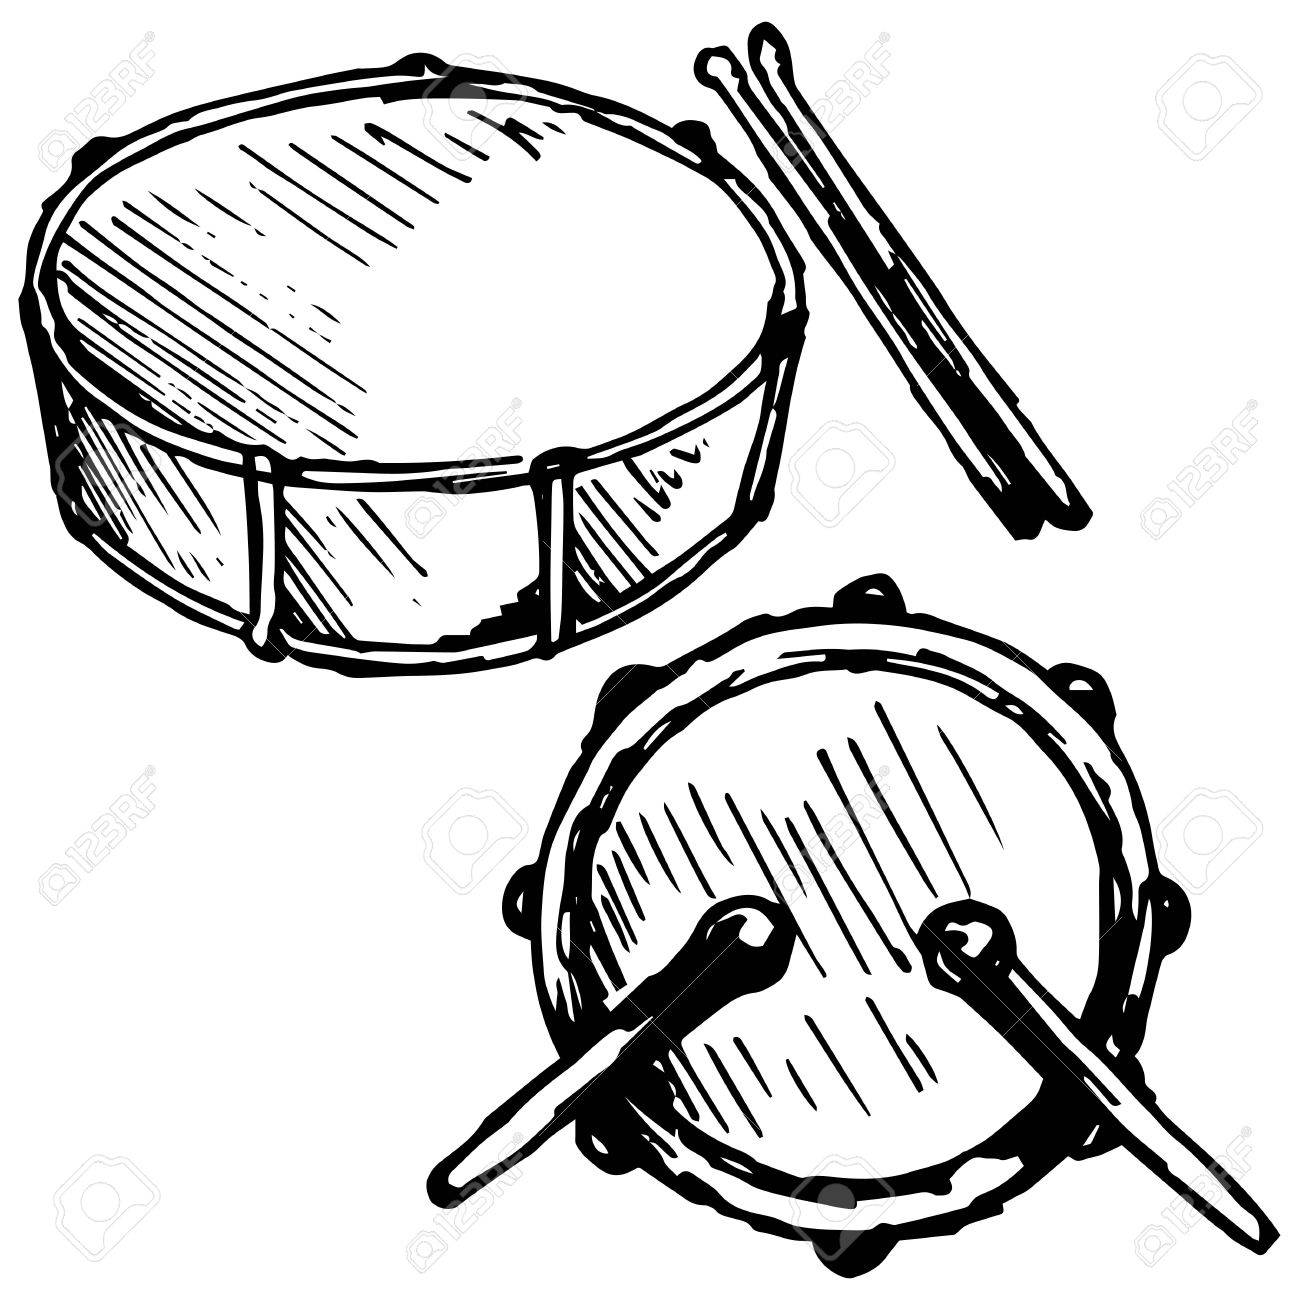 Drum Set Illustration In Doodle Style Royalty Free Cliparts Vectors